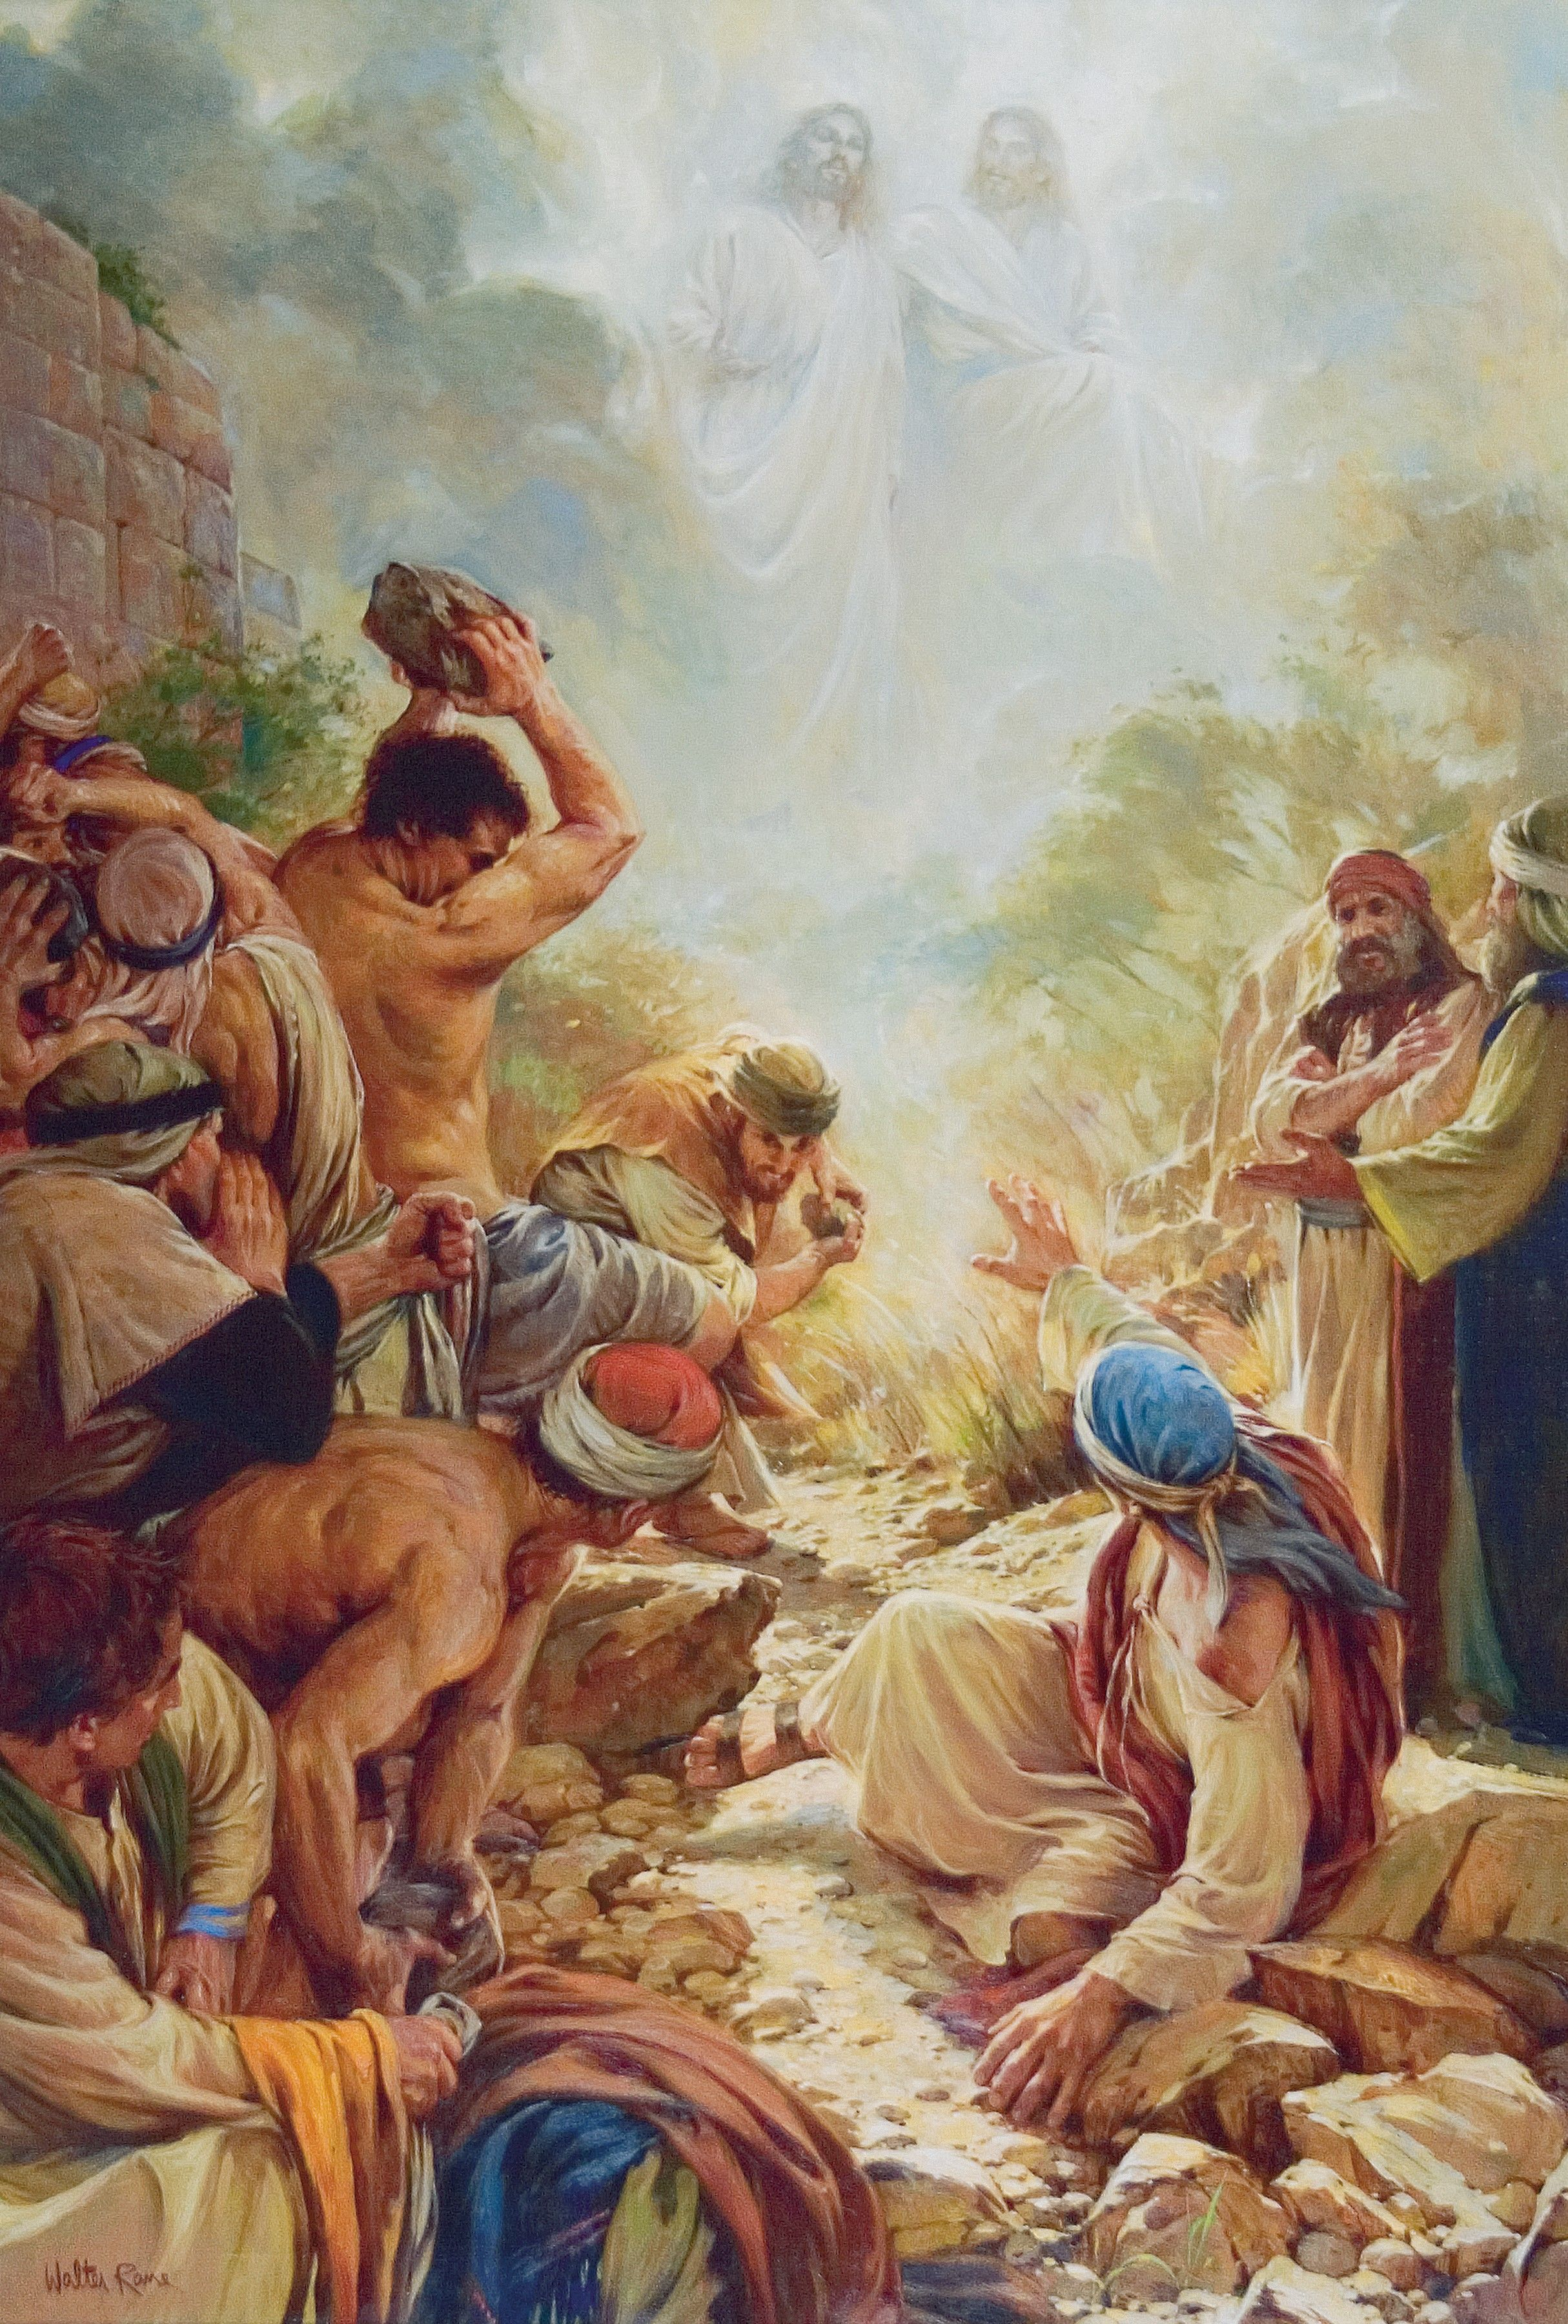 A painting by Walter Rane showing Stephen being stoned by an angry mob, with a vision of God the Father and Jesus Christ in the heavens.